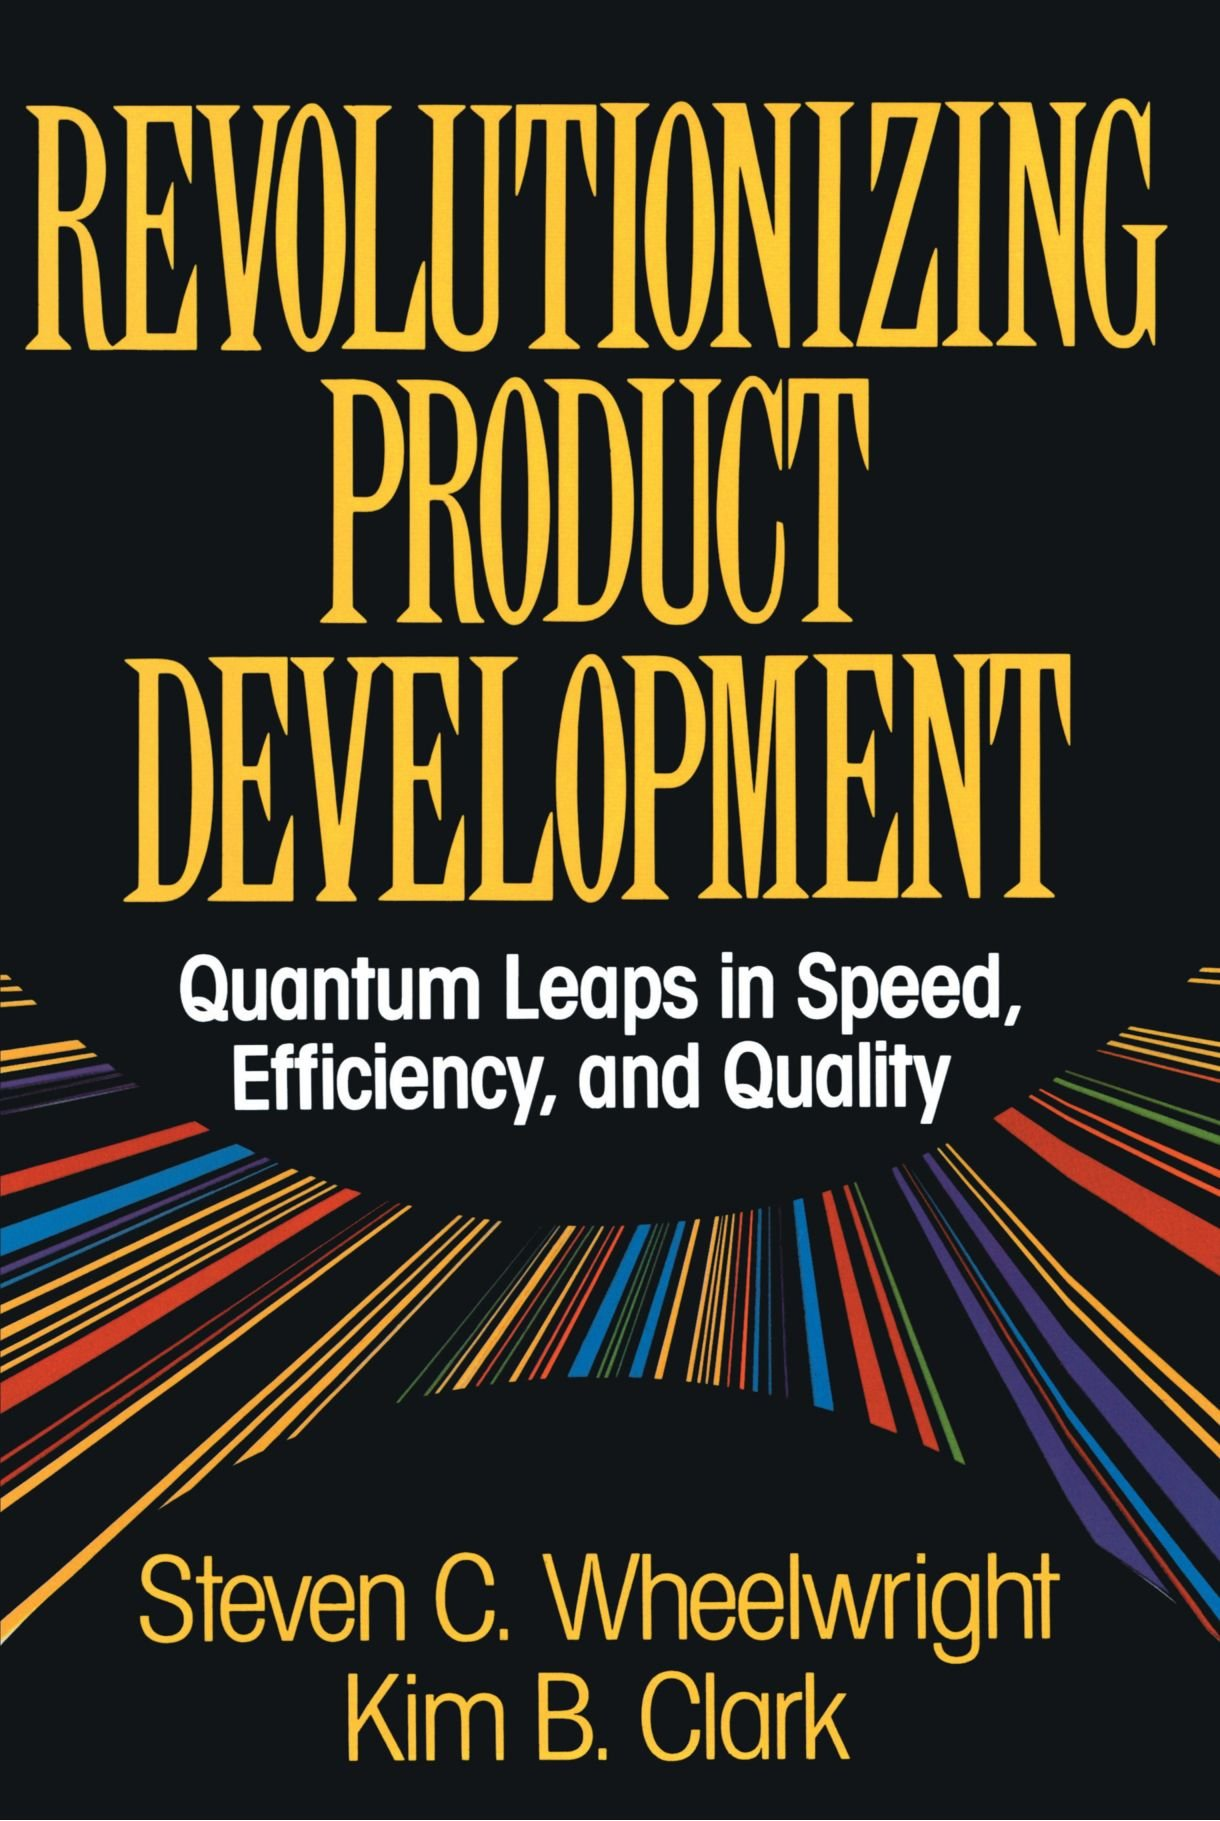 Download Revolutionizing Product Development: Quantum Leaps in Speed, Efficiency and Quality ebook